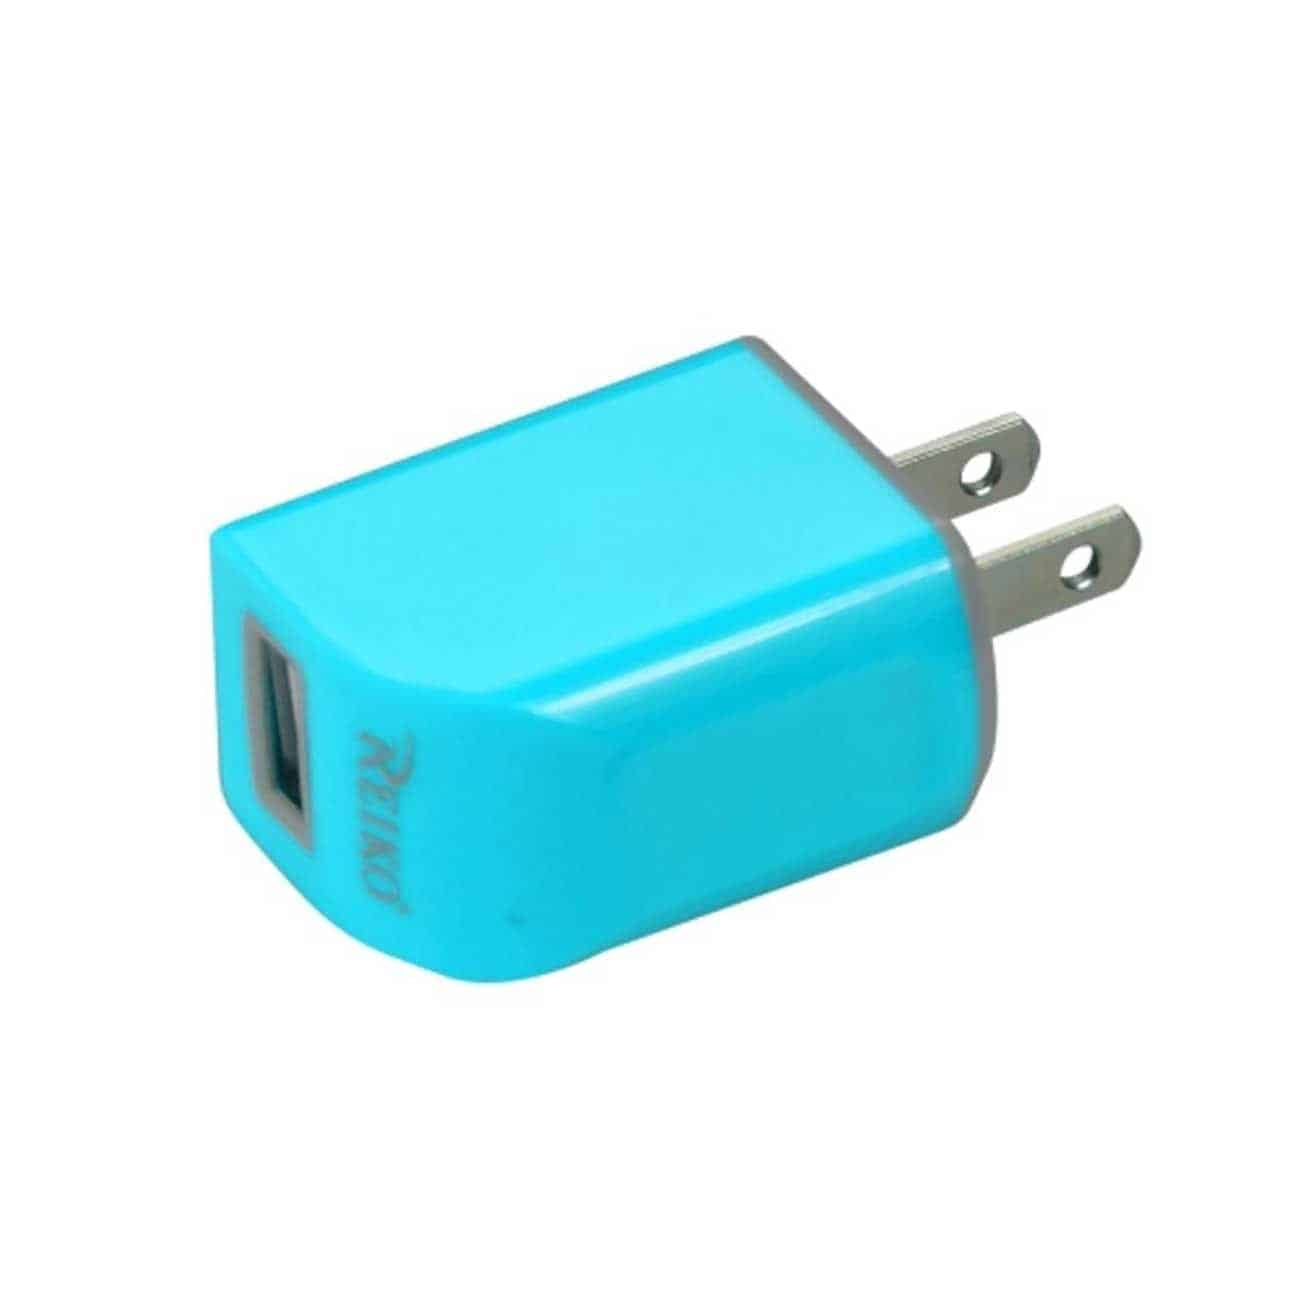 MICRO USB 1 AMP PORTABLE MICRO TRAVEL ADAPTER CHARGER WITH CABLE IN BLUE